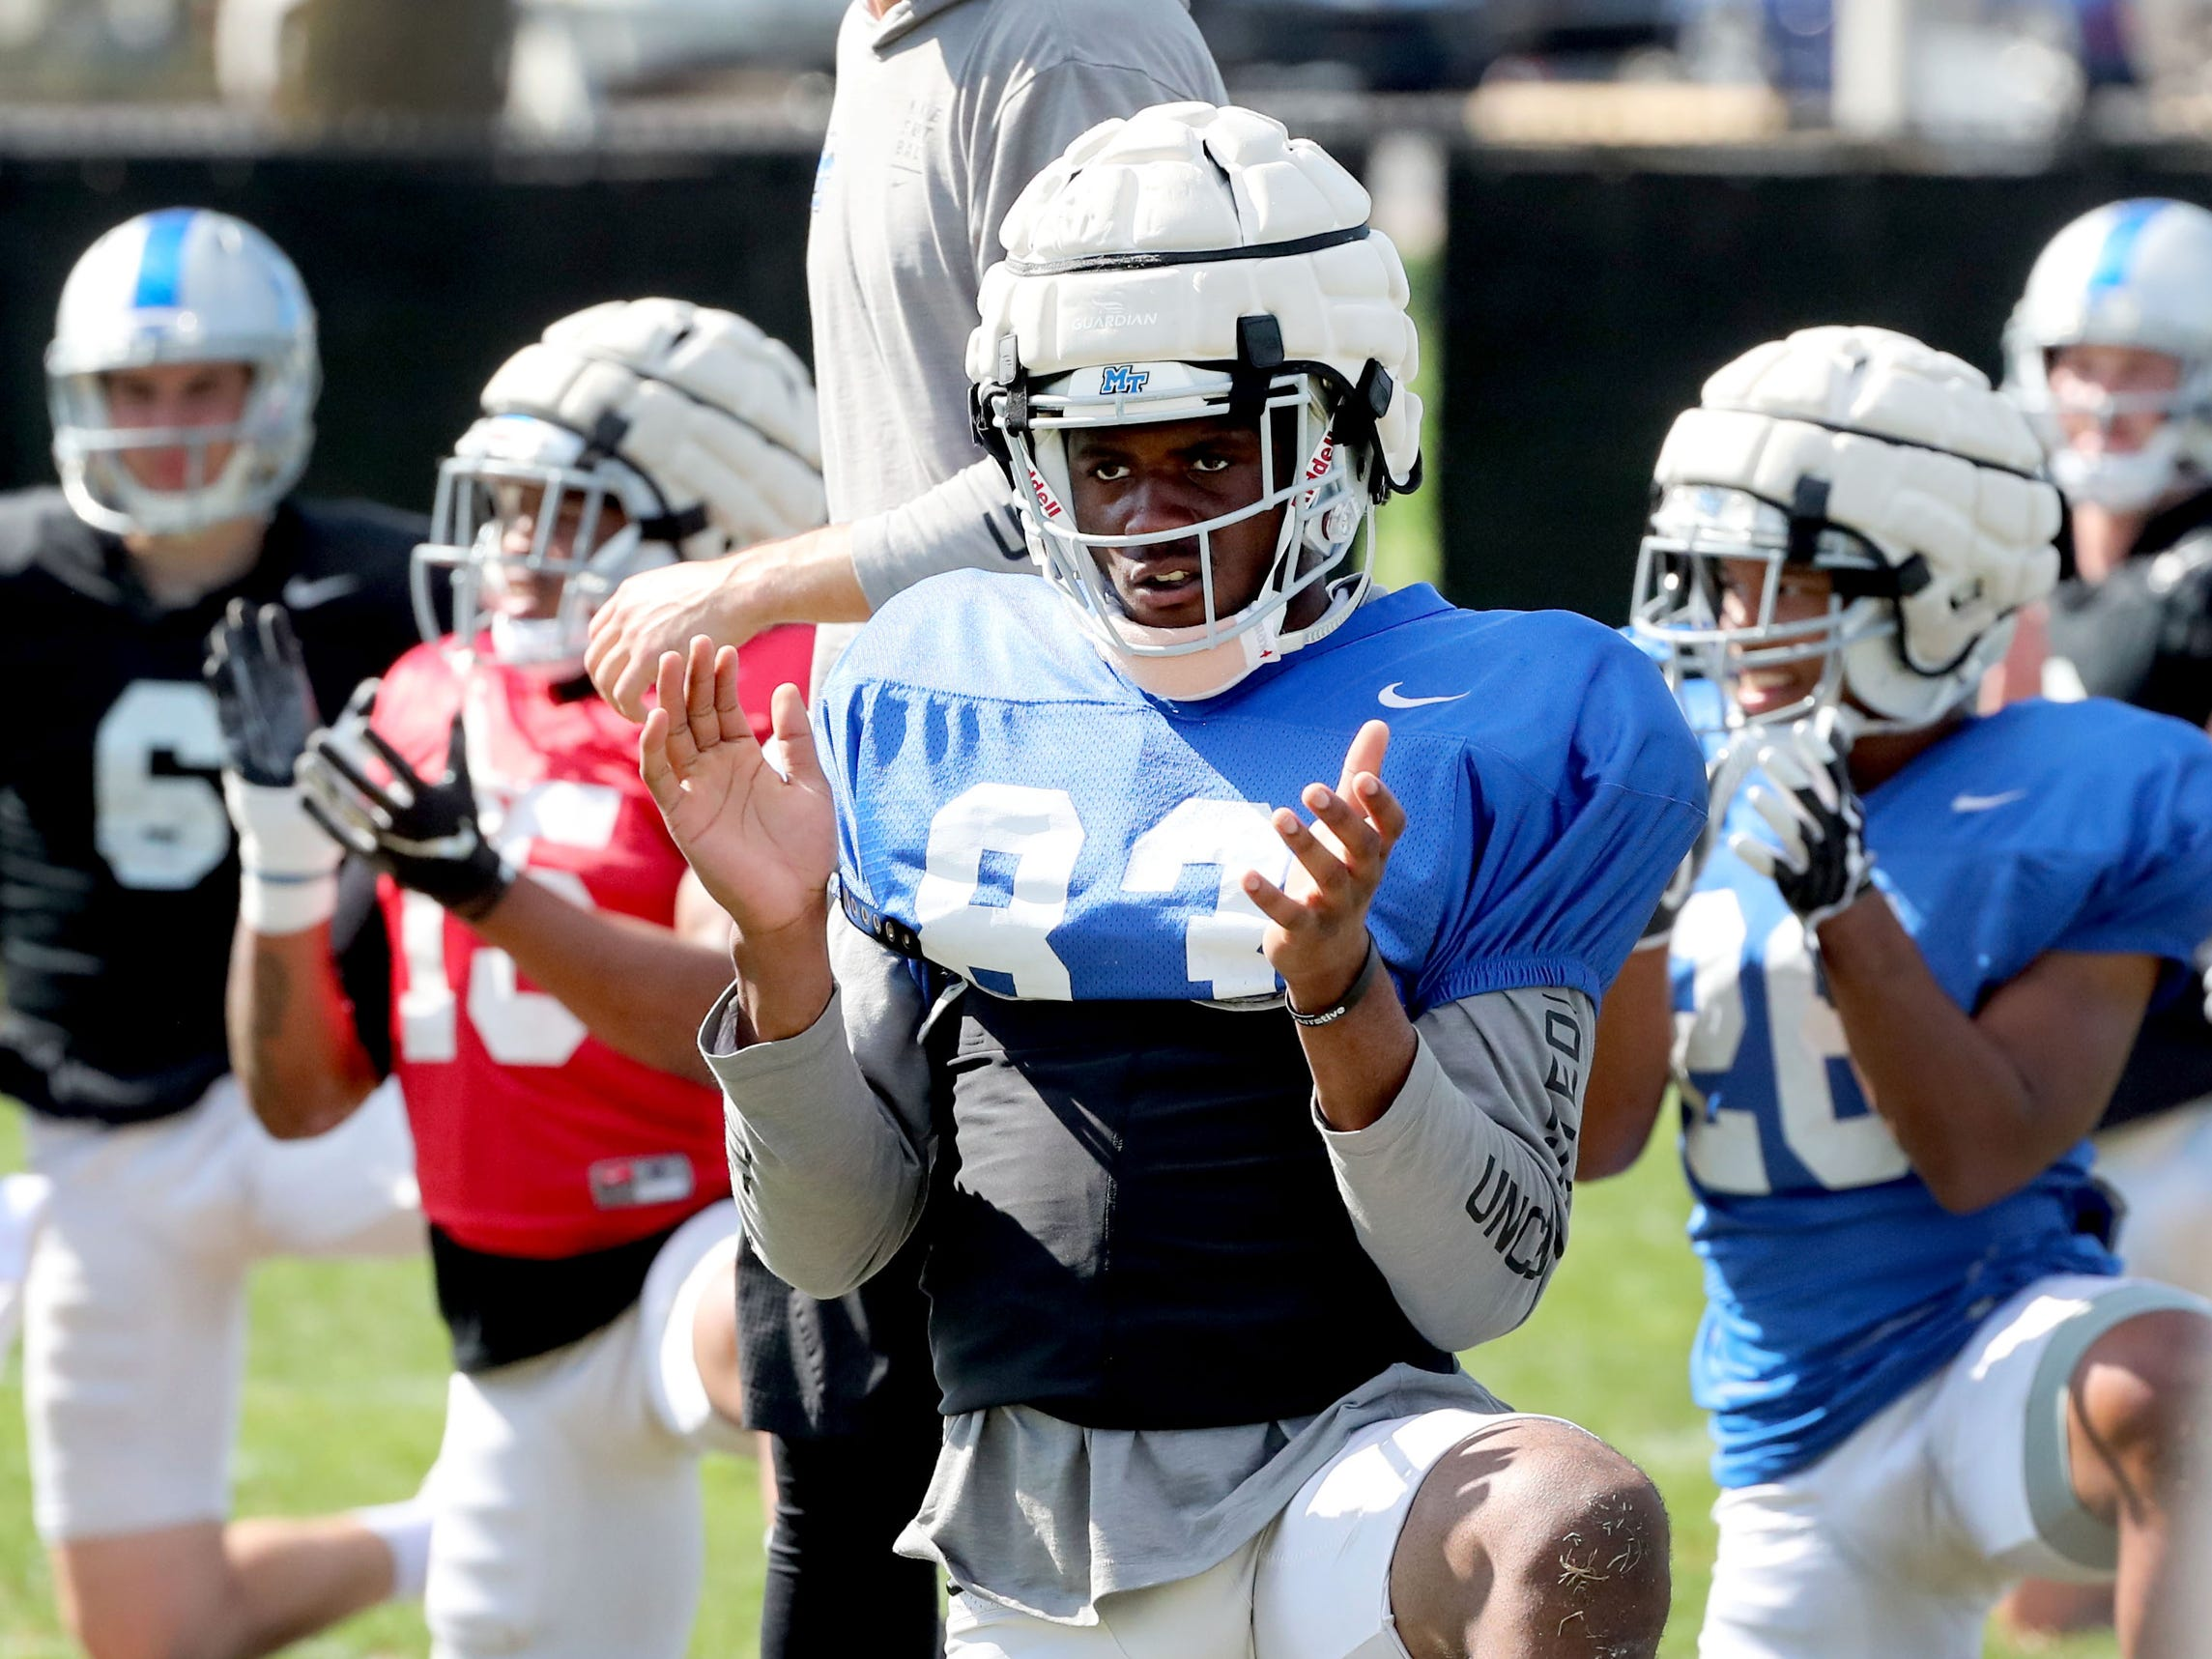 MTSU's wide receiver Jimmy Marshall (83) warms up during MTSU's football practice, in Murfreesboro on Tuesday April 9, 2019.